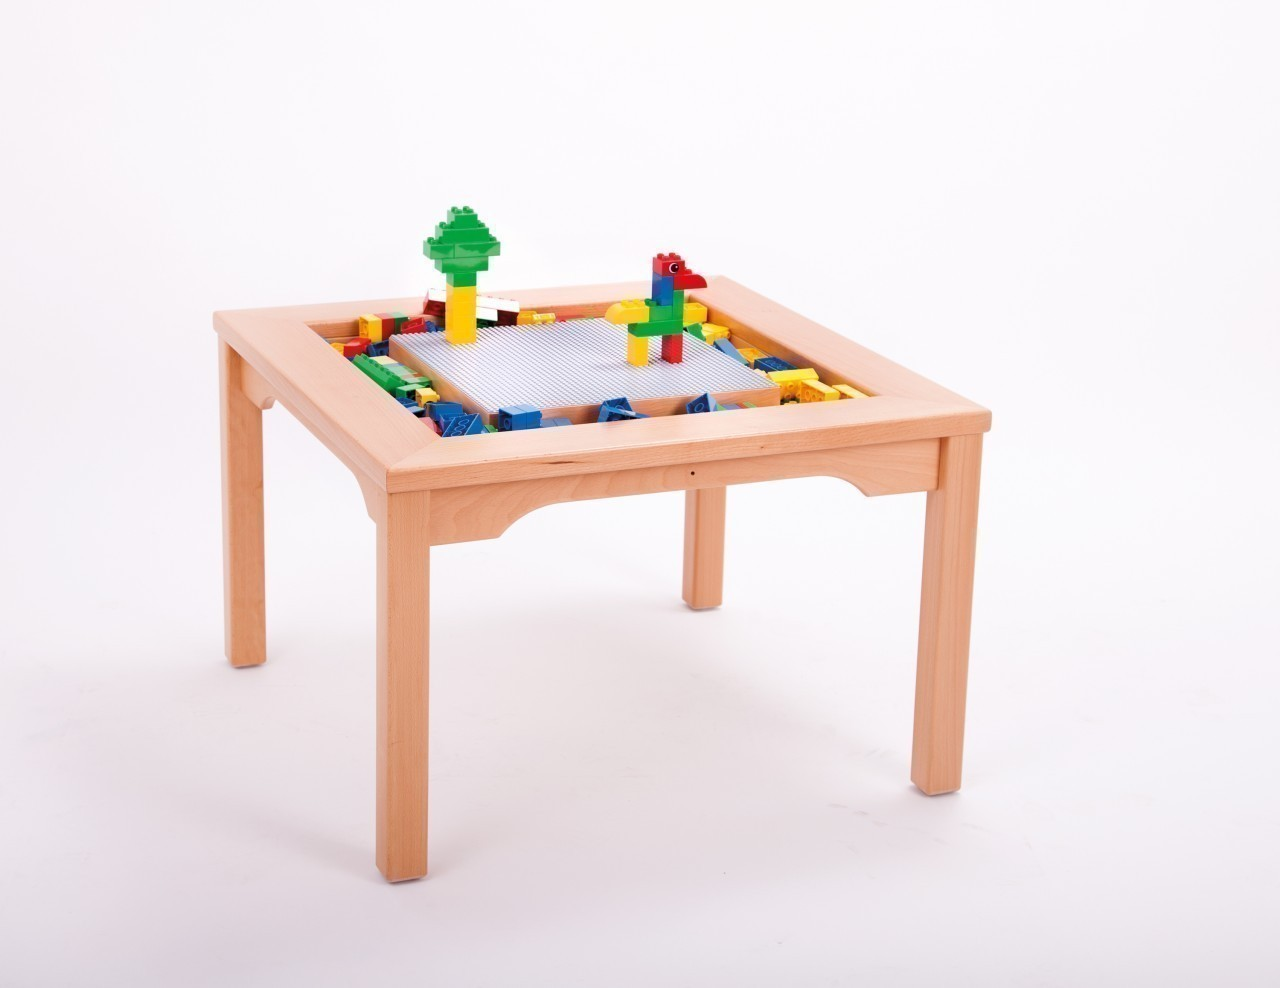 lego duplo spieltisch 30051000 holz tisch kindertisch. Black Bedroom Furniture Sets. Home Design Ideas